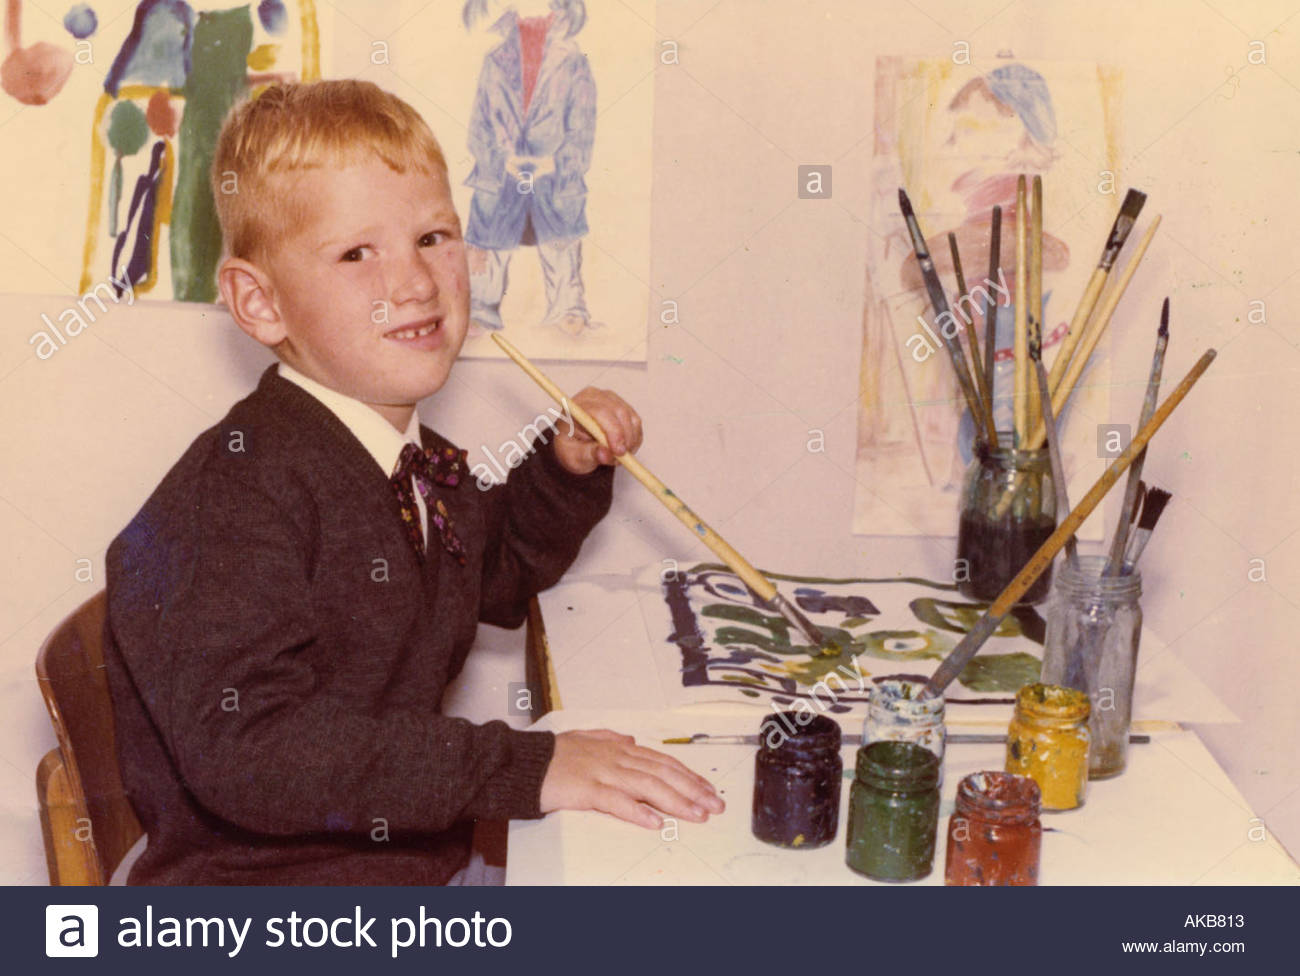 A child posing for school portrait - Stock Image